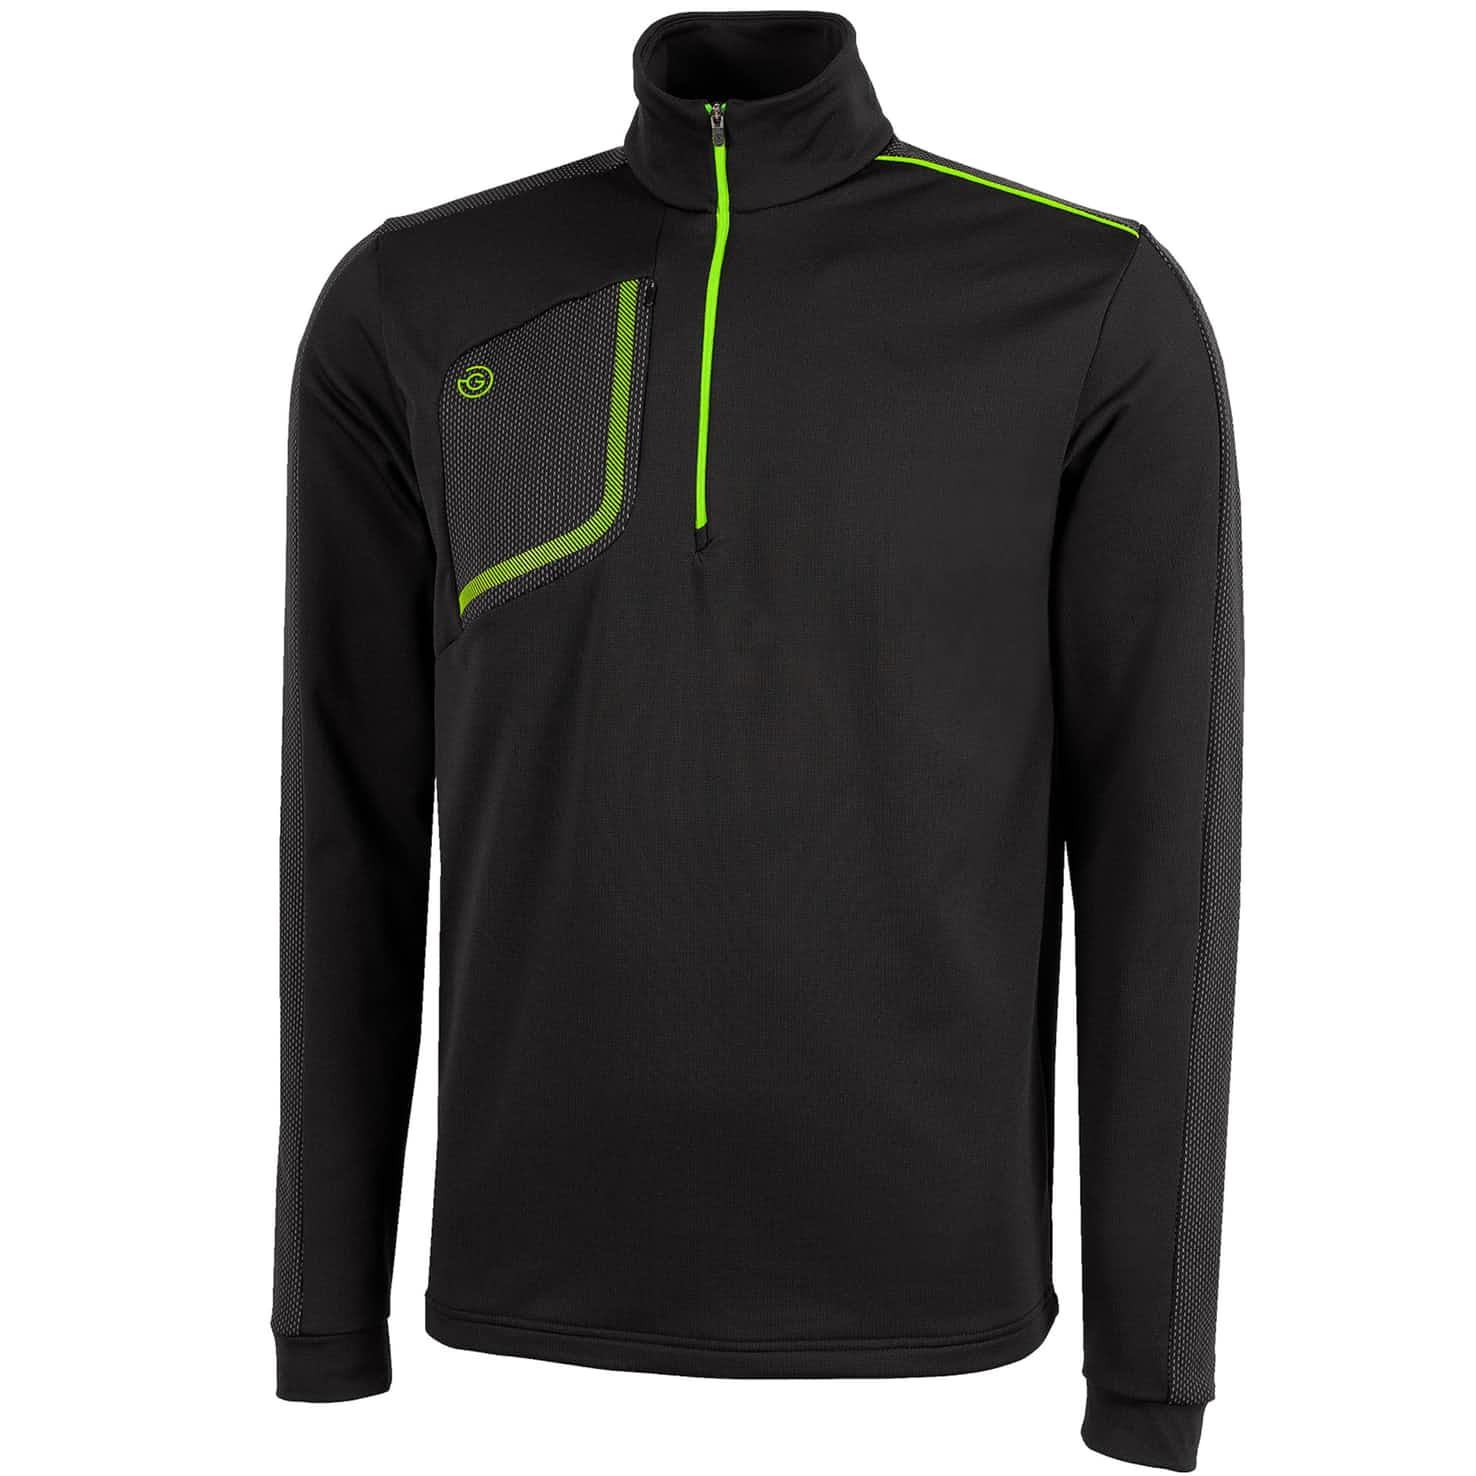 Dwight HZ Insula Jacket Black/Lime - SS20